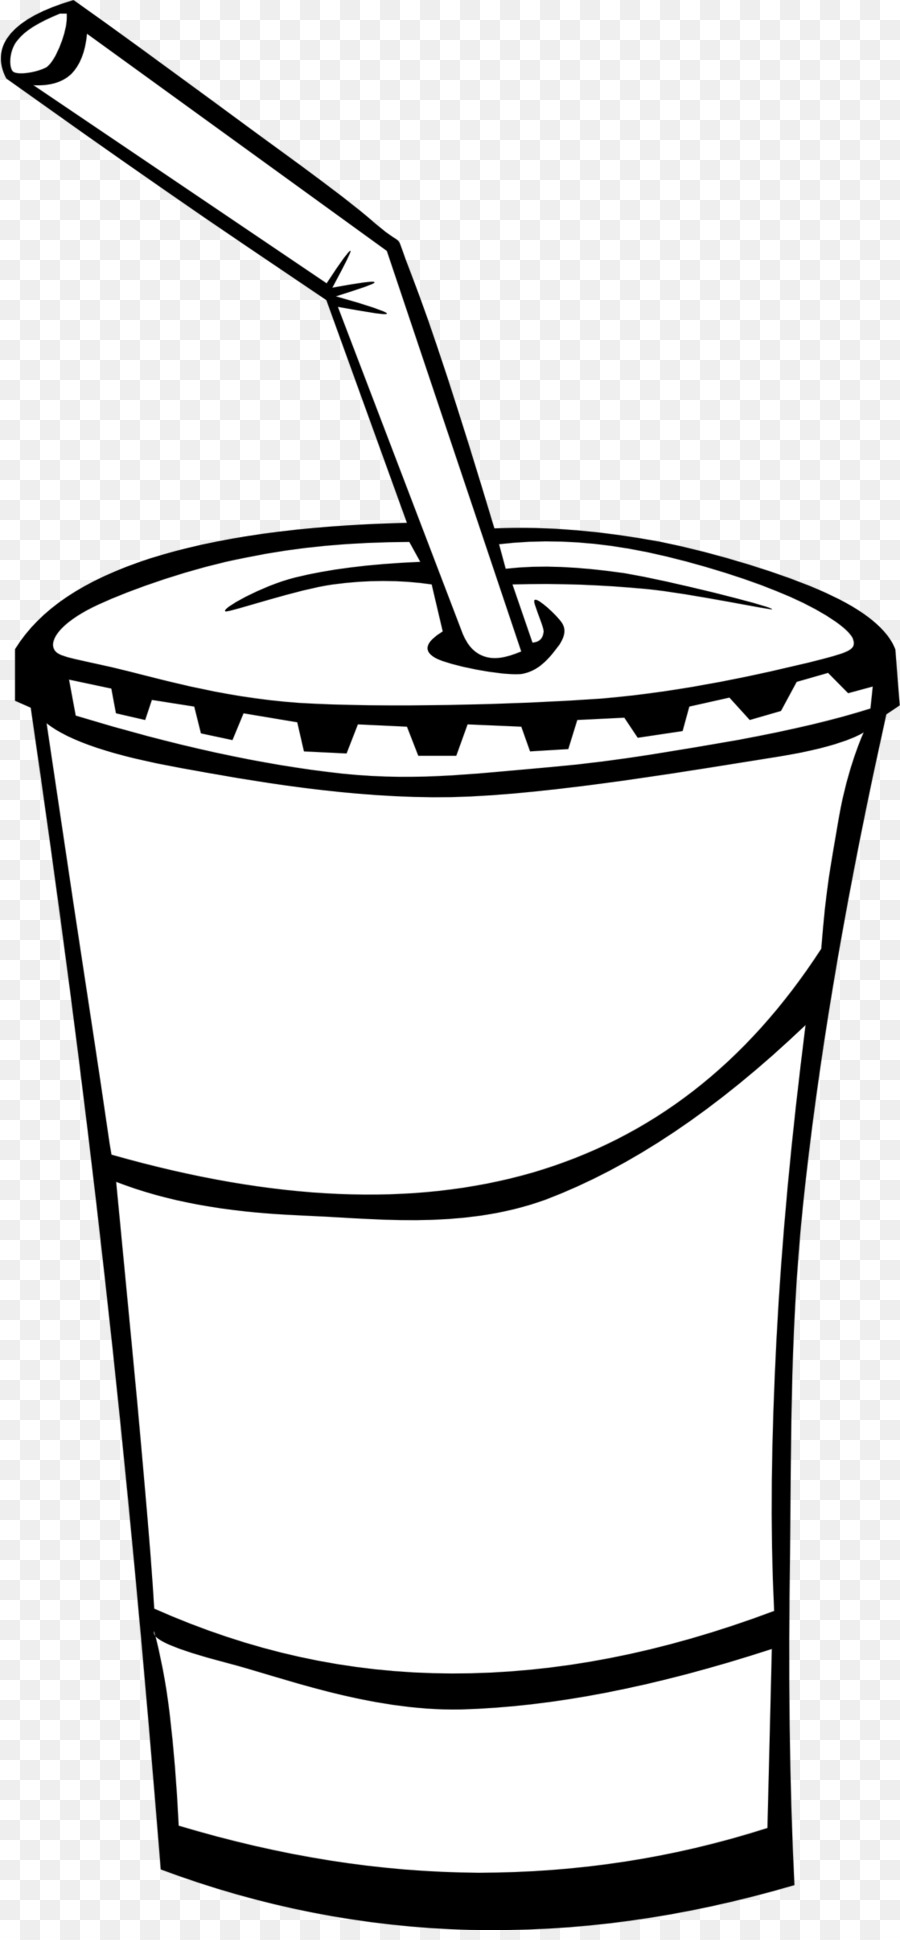 Juice background cocktail drink. Drinking clipart line